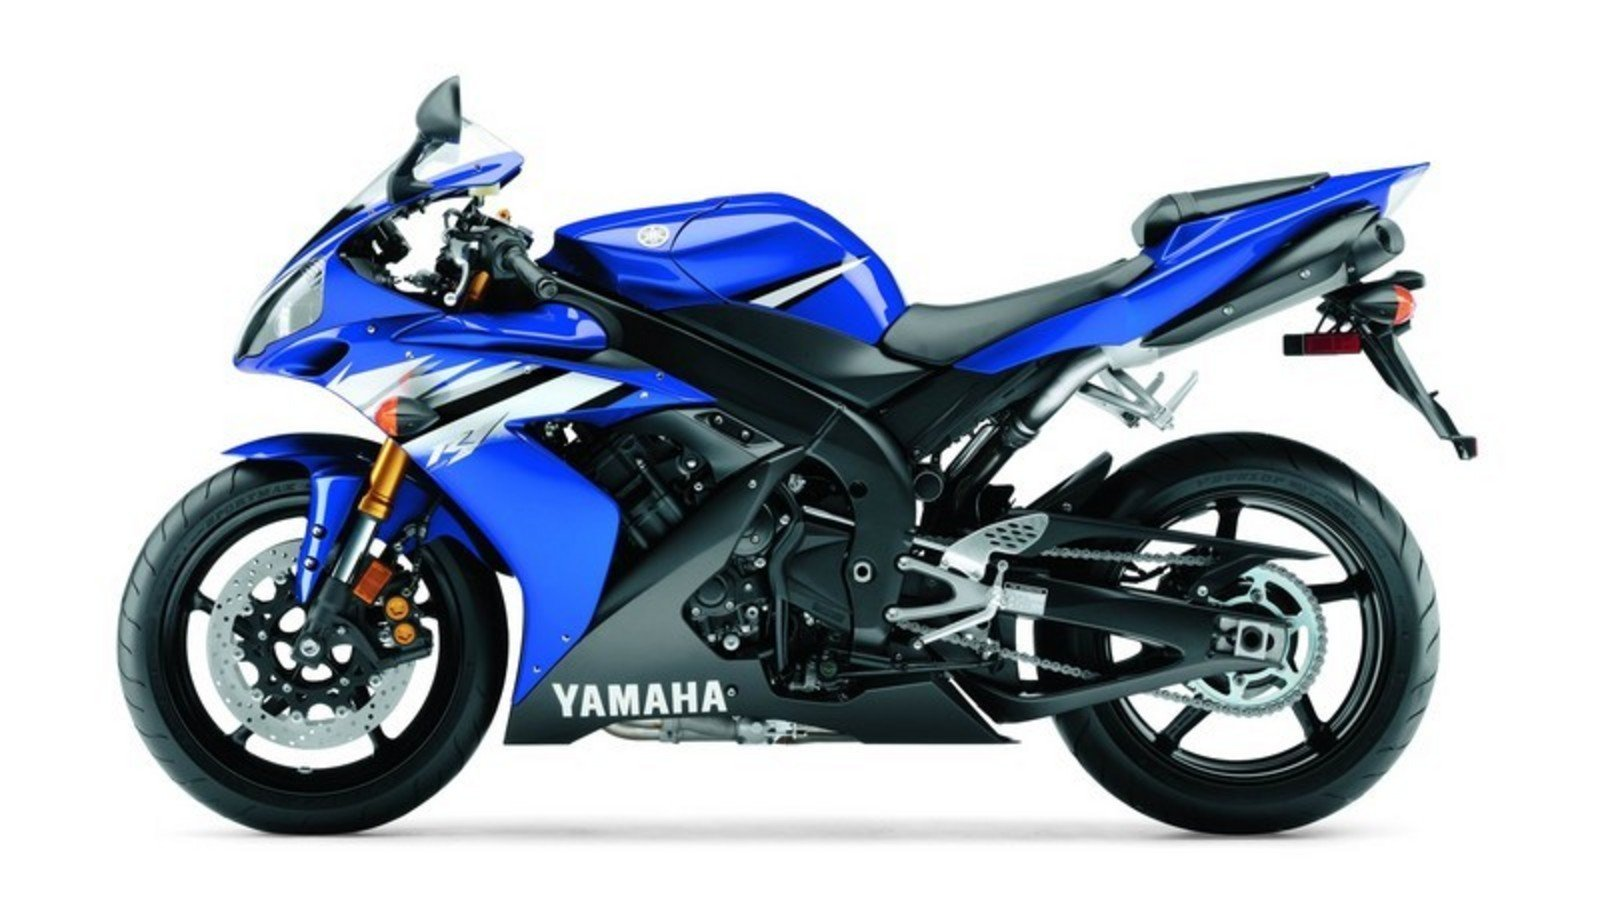 2006 yamaha yzf r6s picture 45971 motorcycle review for 2006 yamaha yzf r6